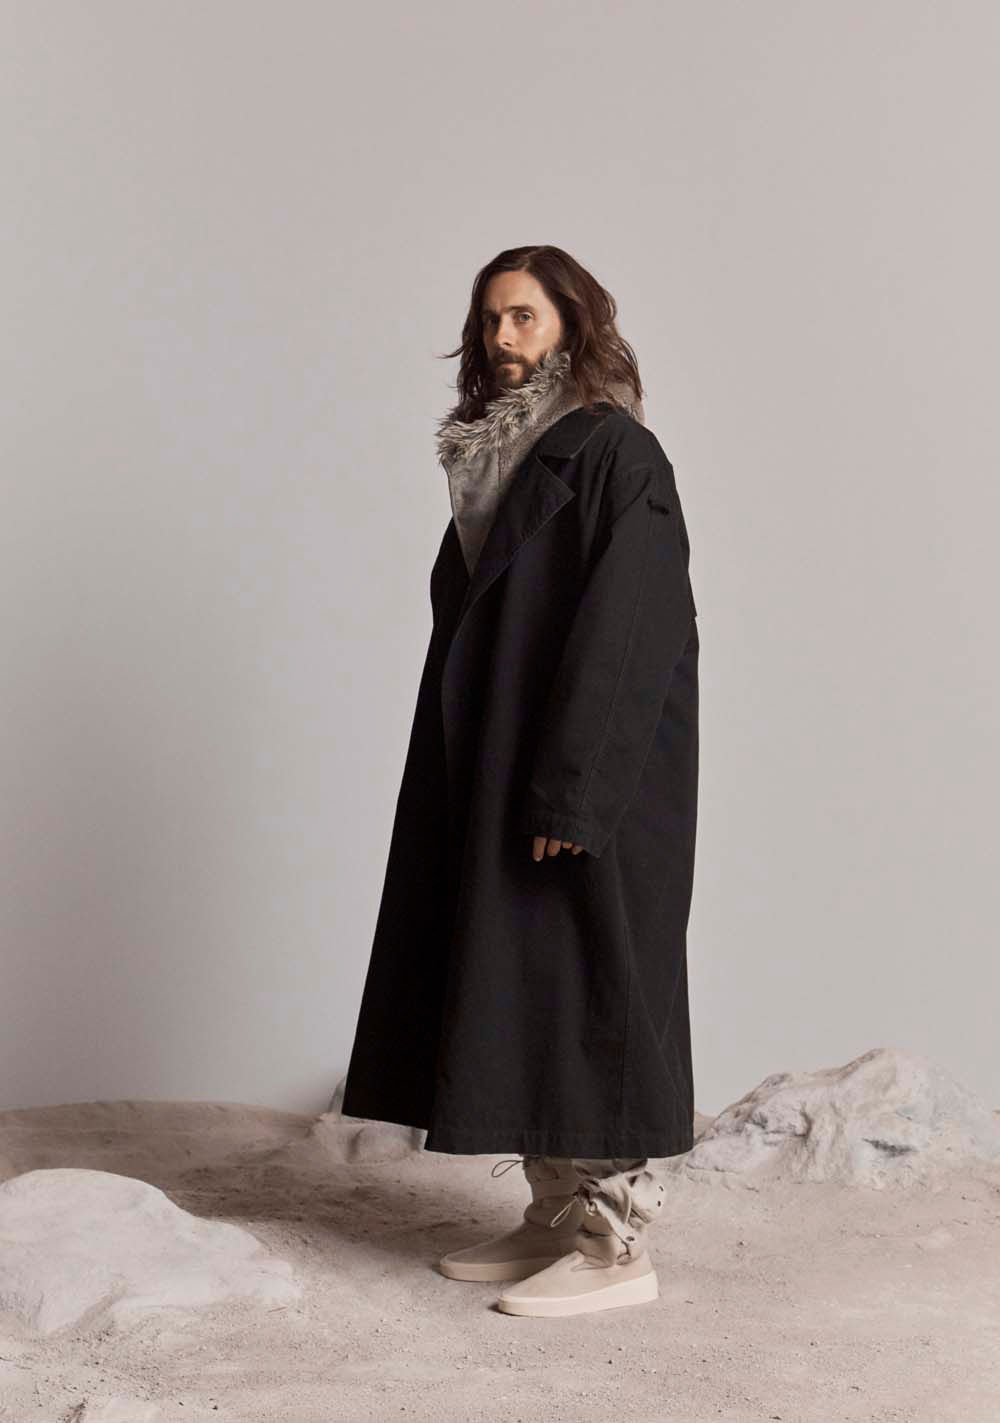 https_%2F%2Fhypebeast.com%2Fimage%2F2018%2F09%2Ffear-of-god-6-sixth-collection-jared-leto-nike-65.jpg